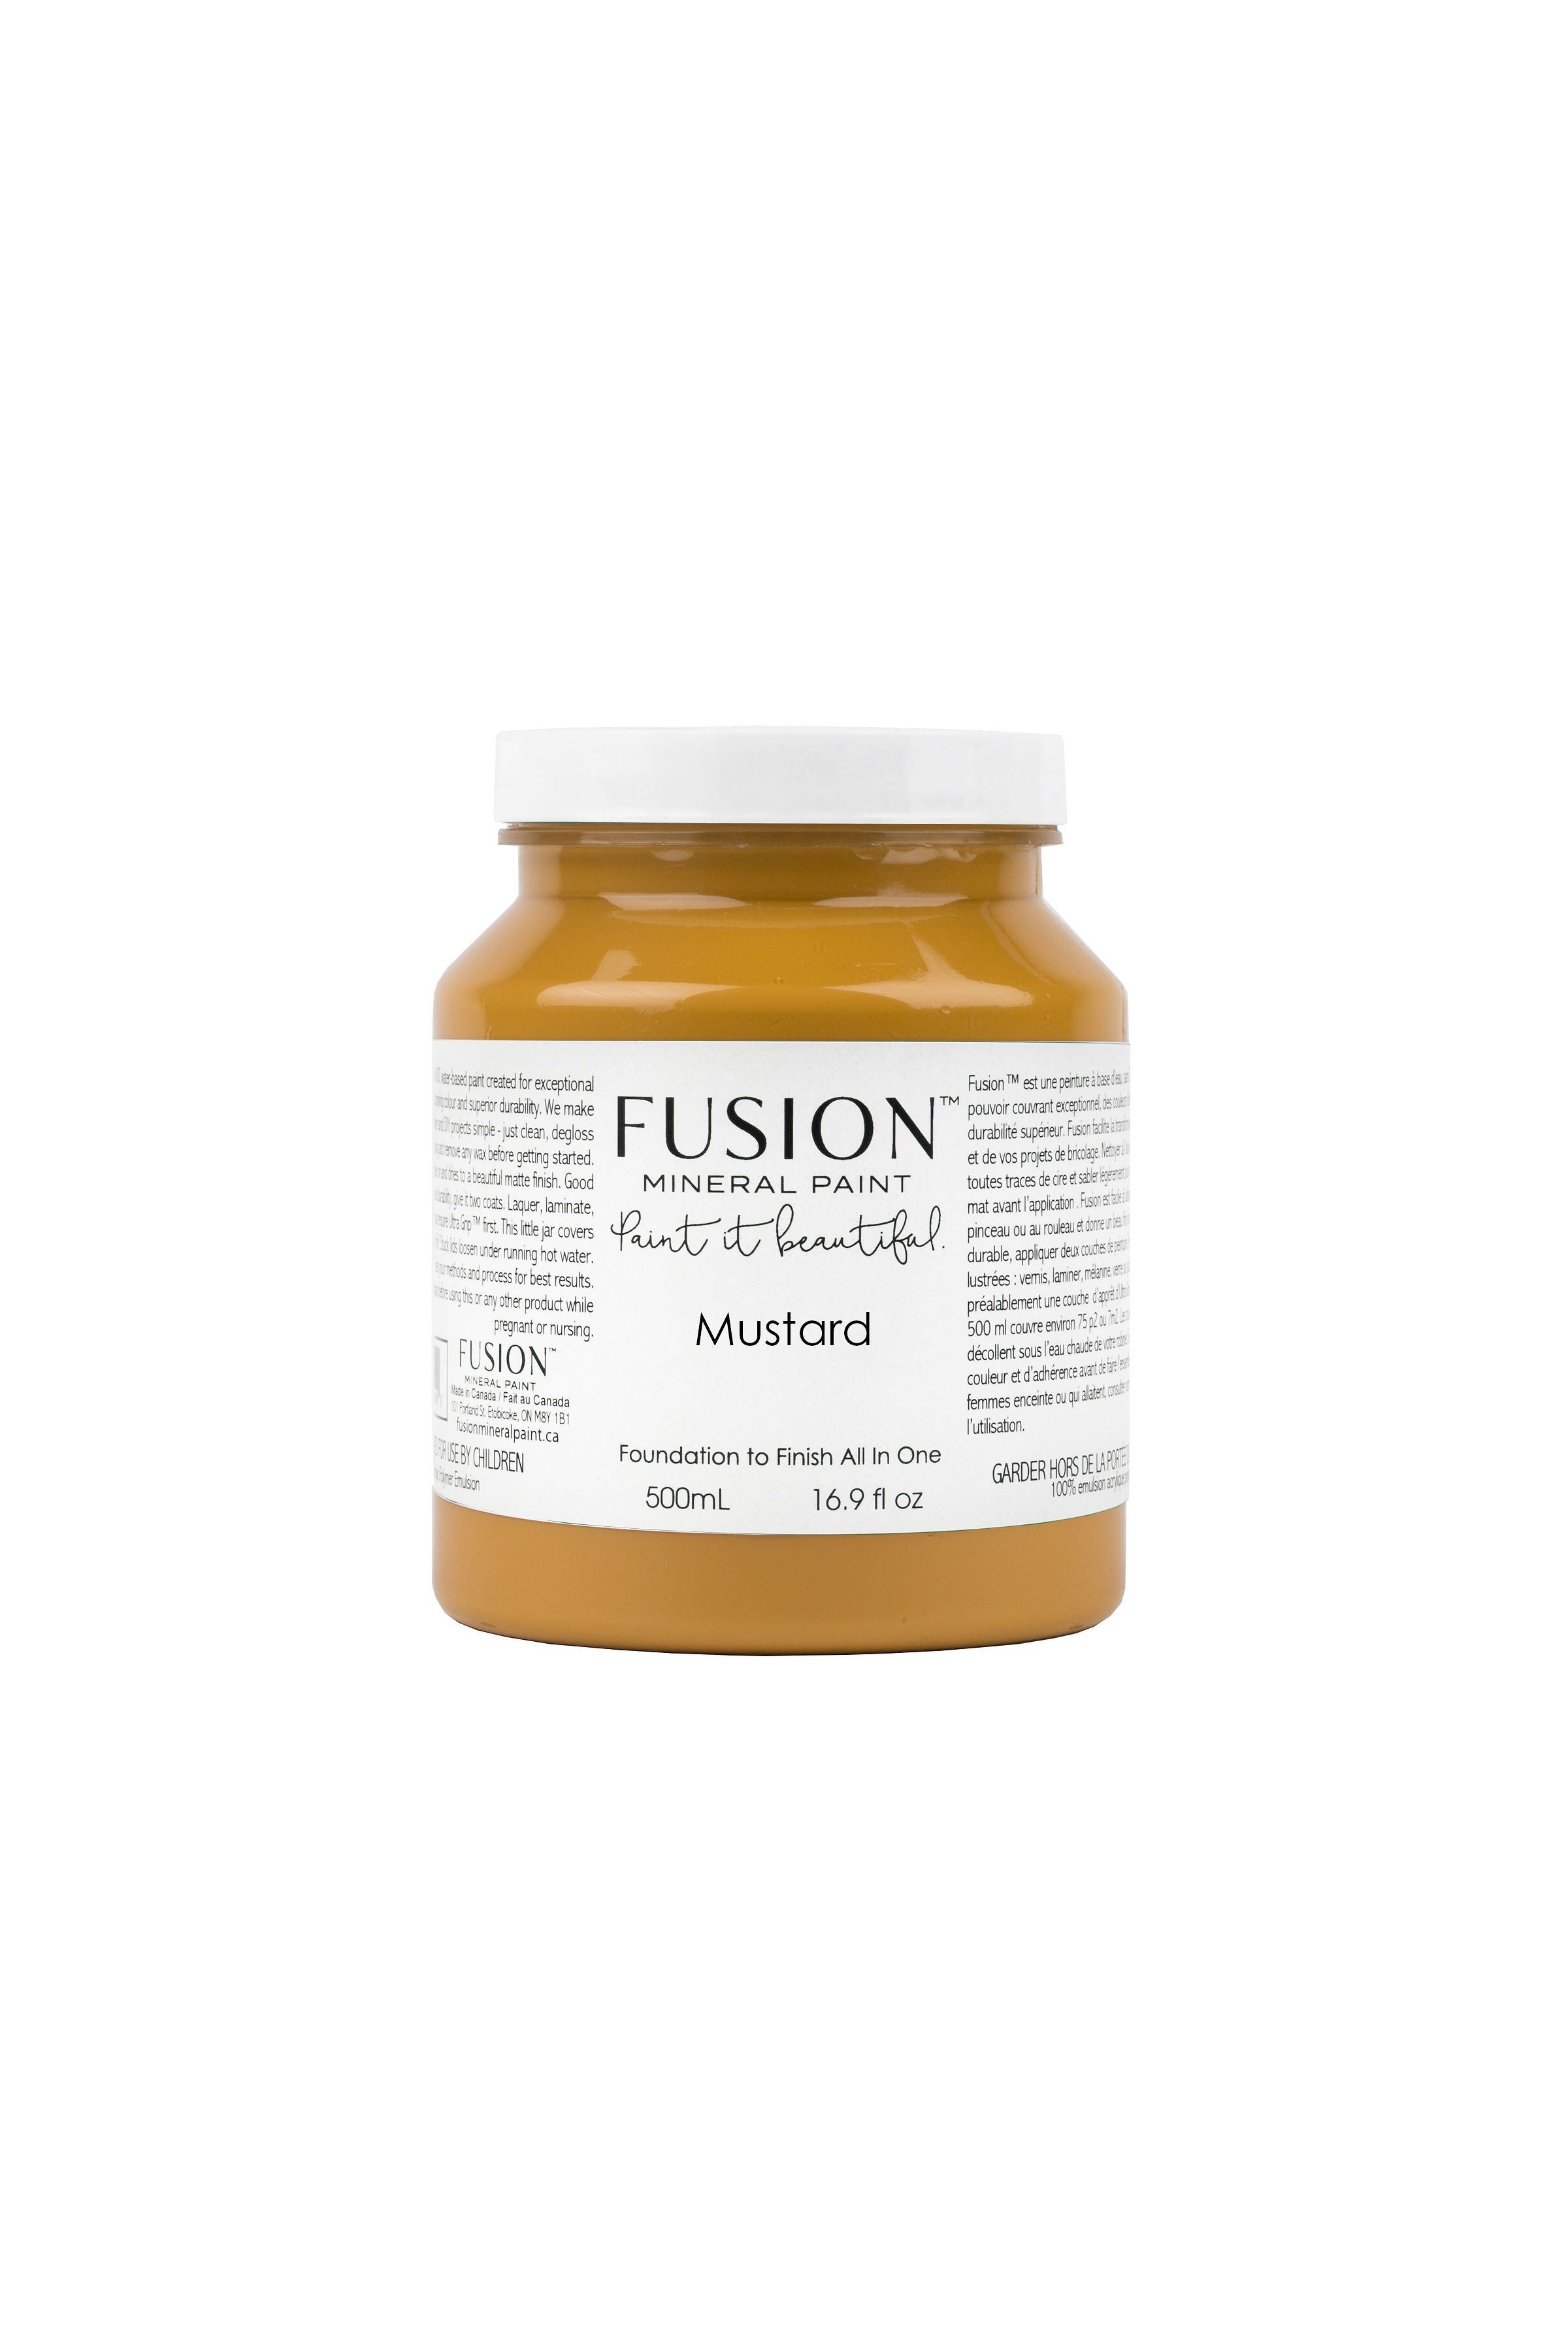 Mustard - Fusion Mineral Paint - 500ml Pint